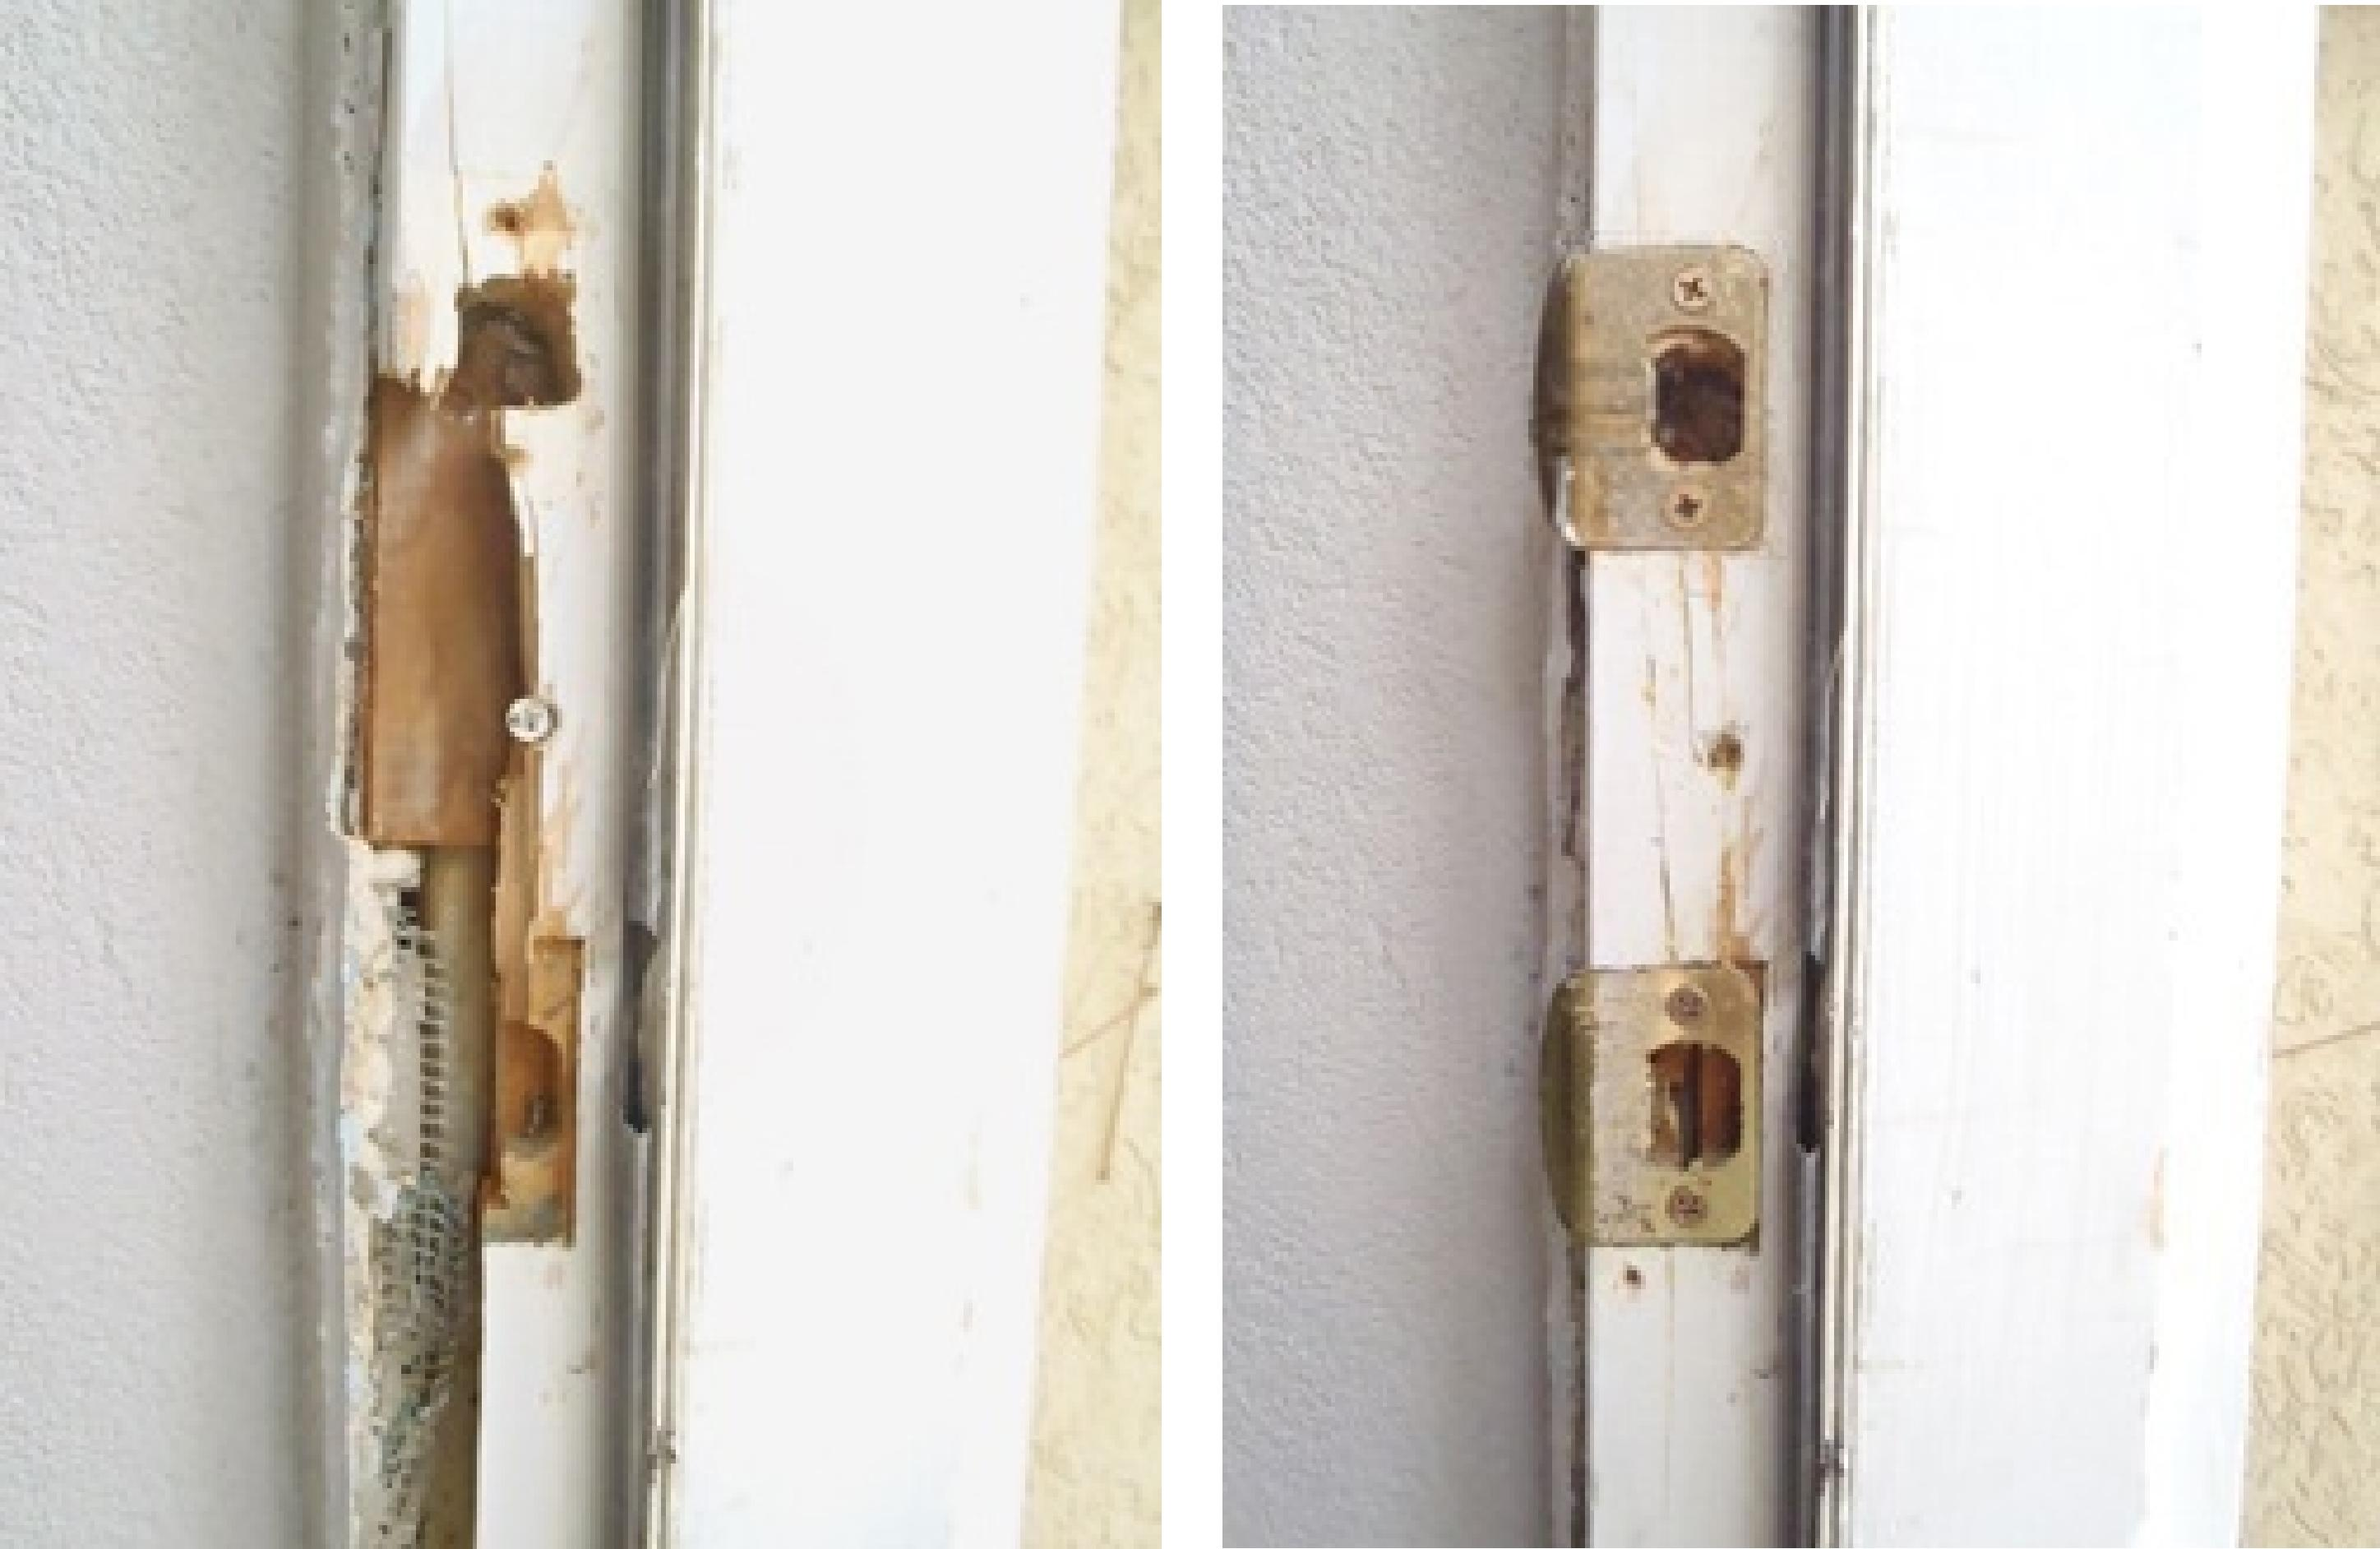 Doors Repair Toronto Door Repair Toronto 647 866 0956